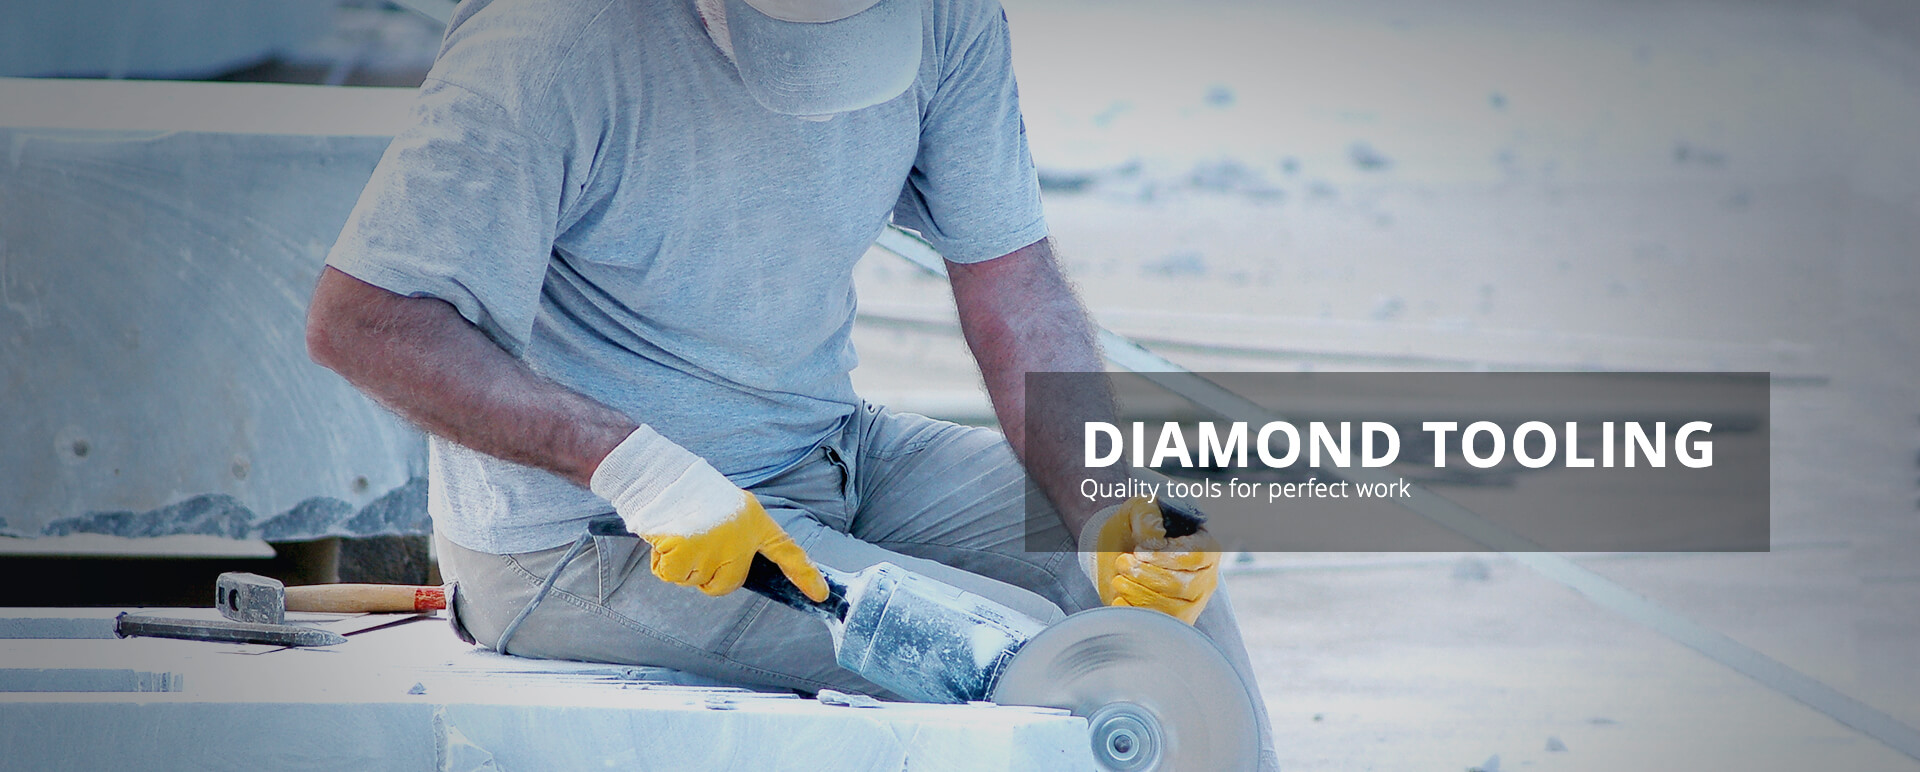 Diamond Tooling